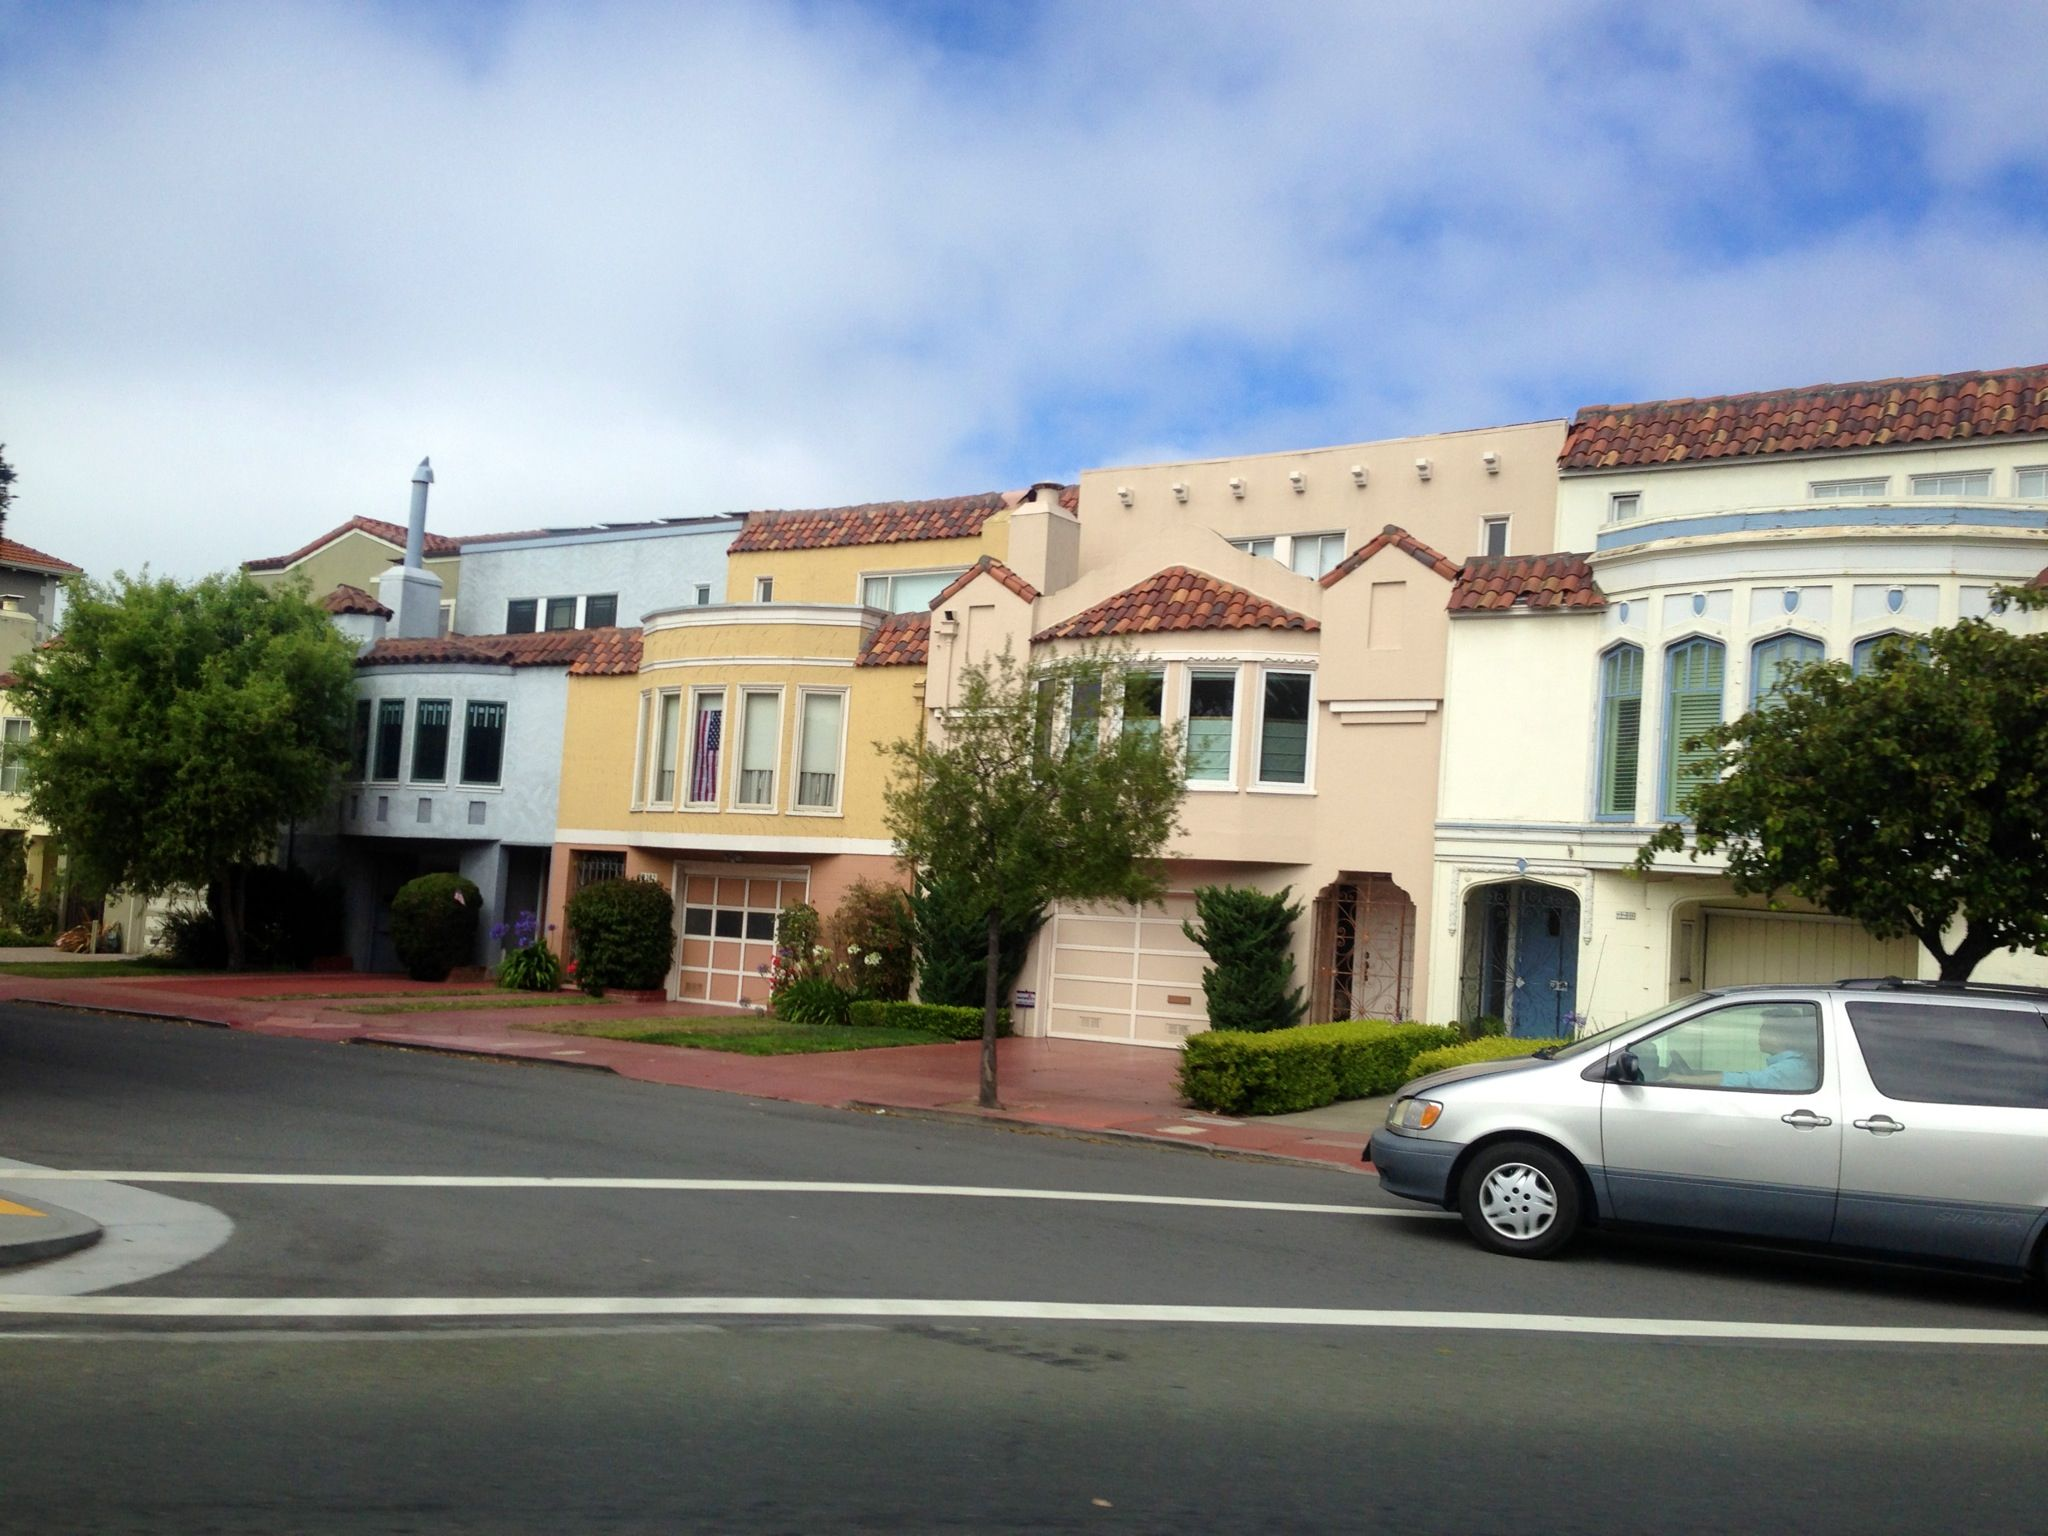 Brightly painted houses in San Francisco